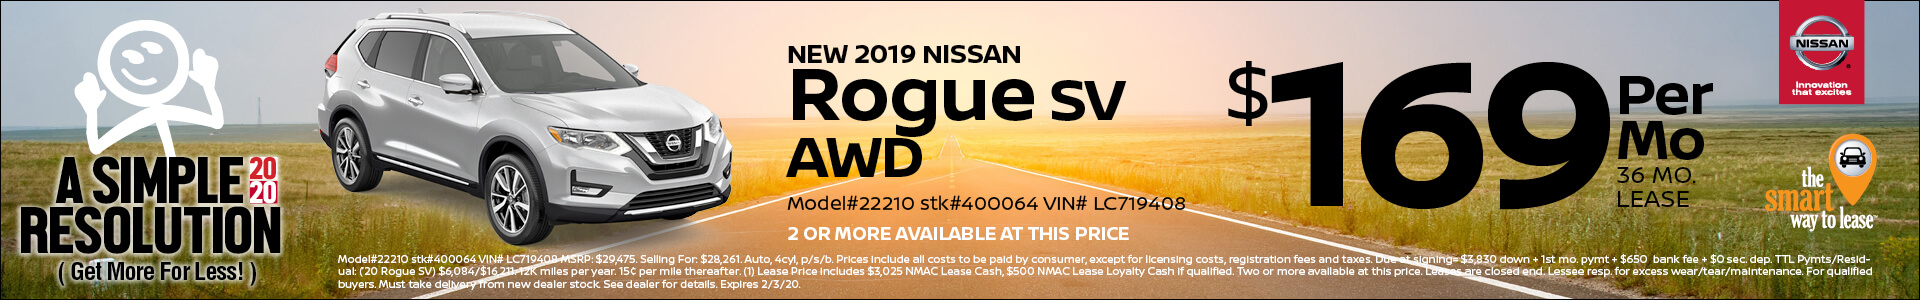 2019 Nissan Rogue Lease for $169